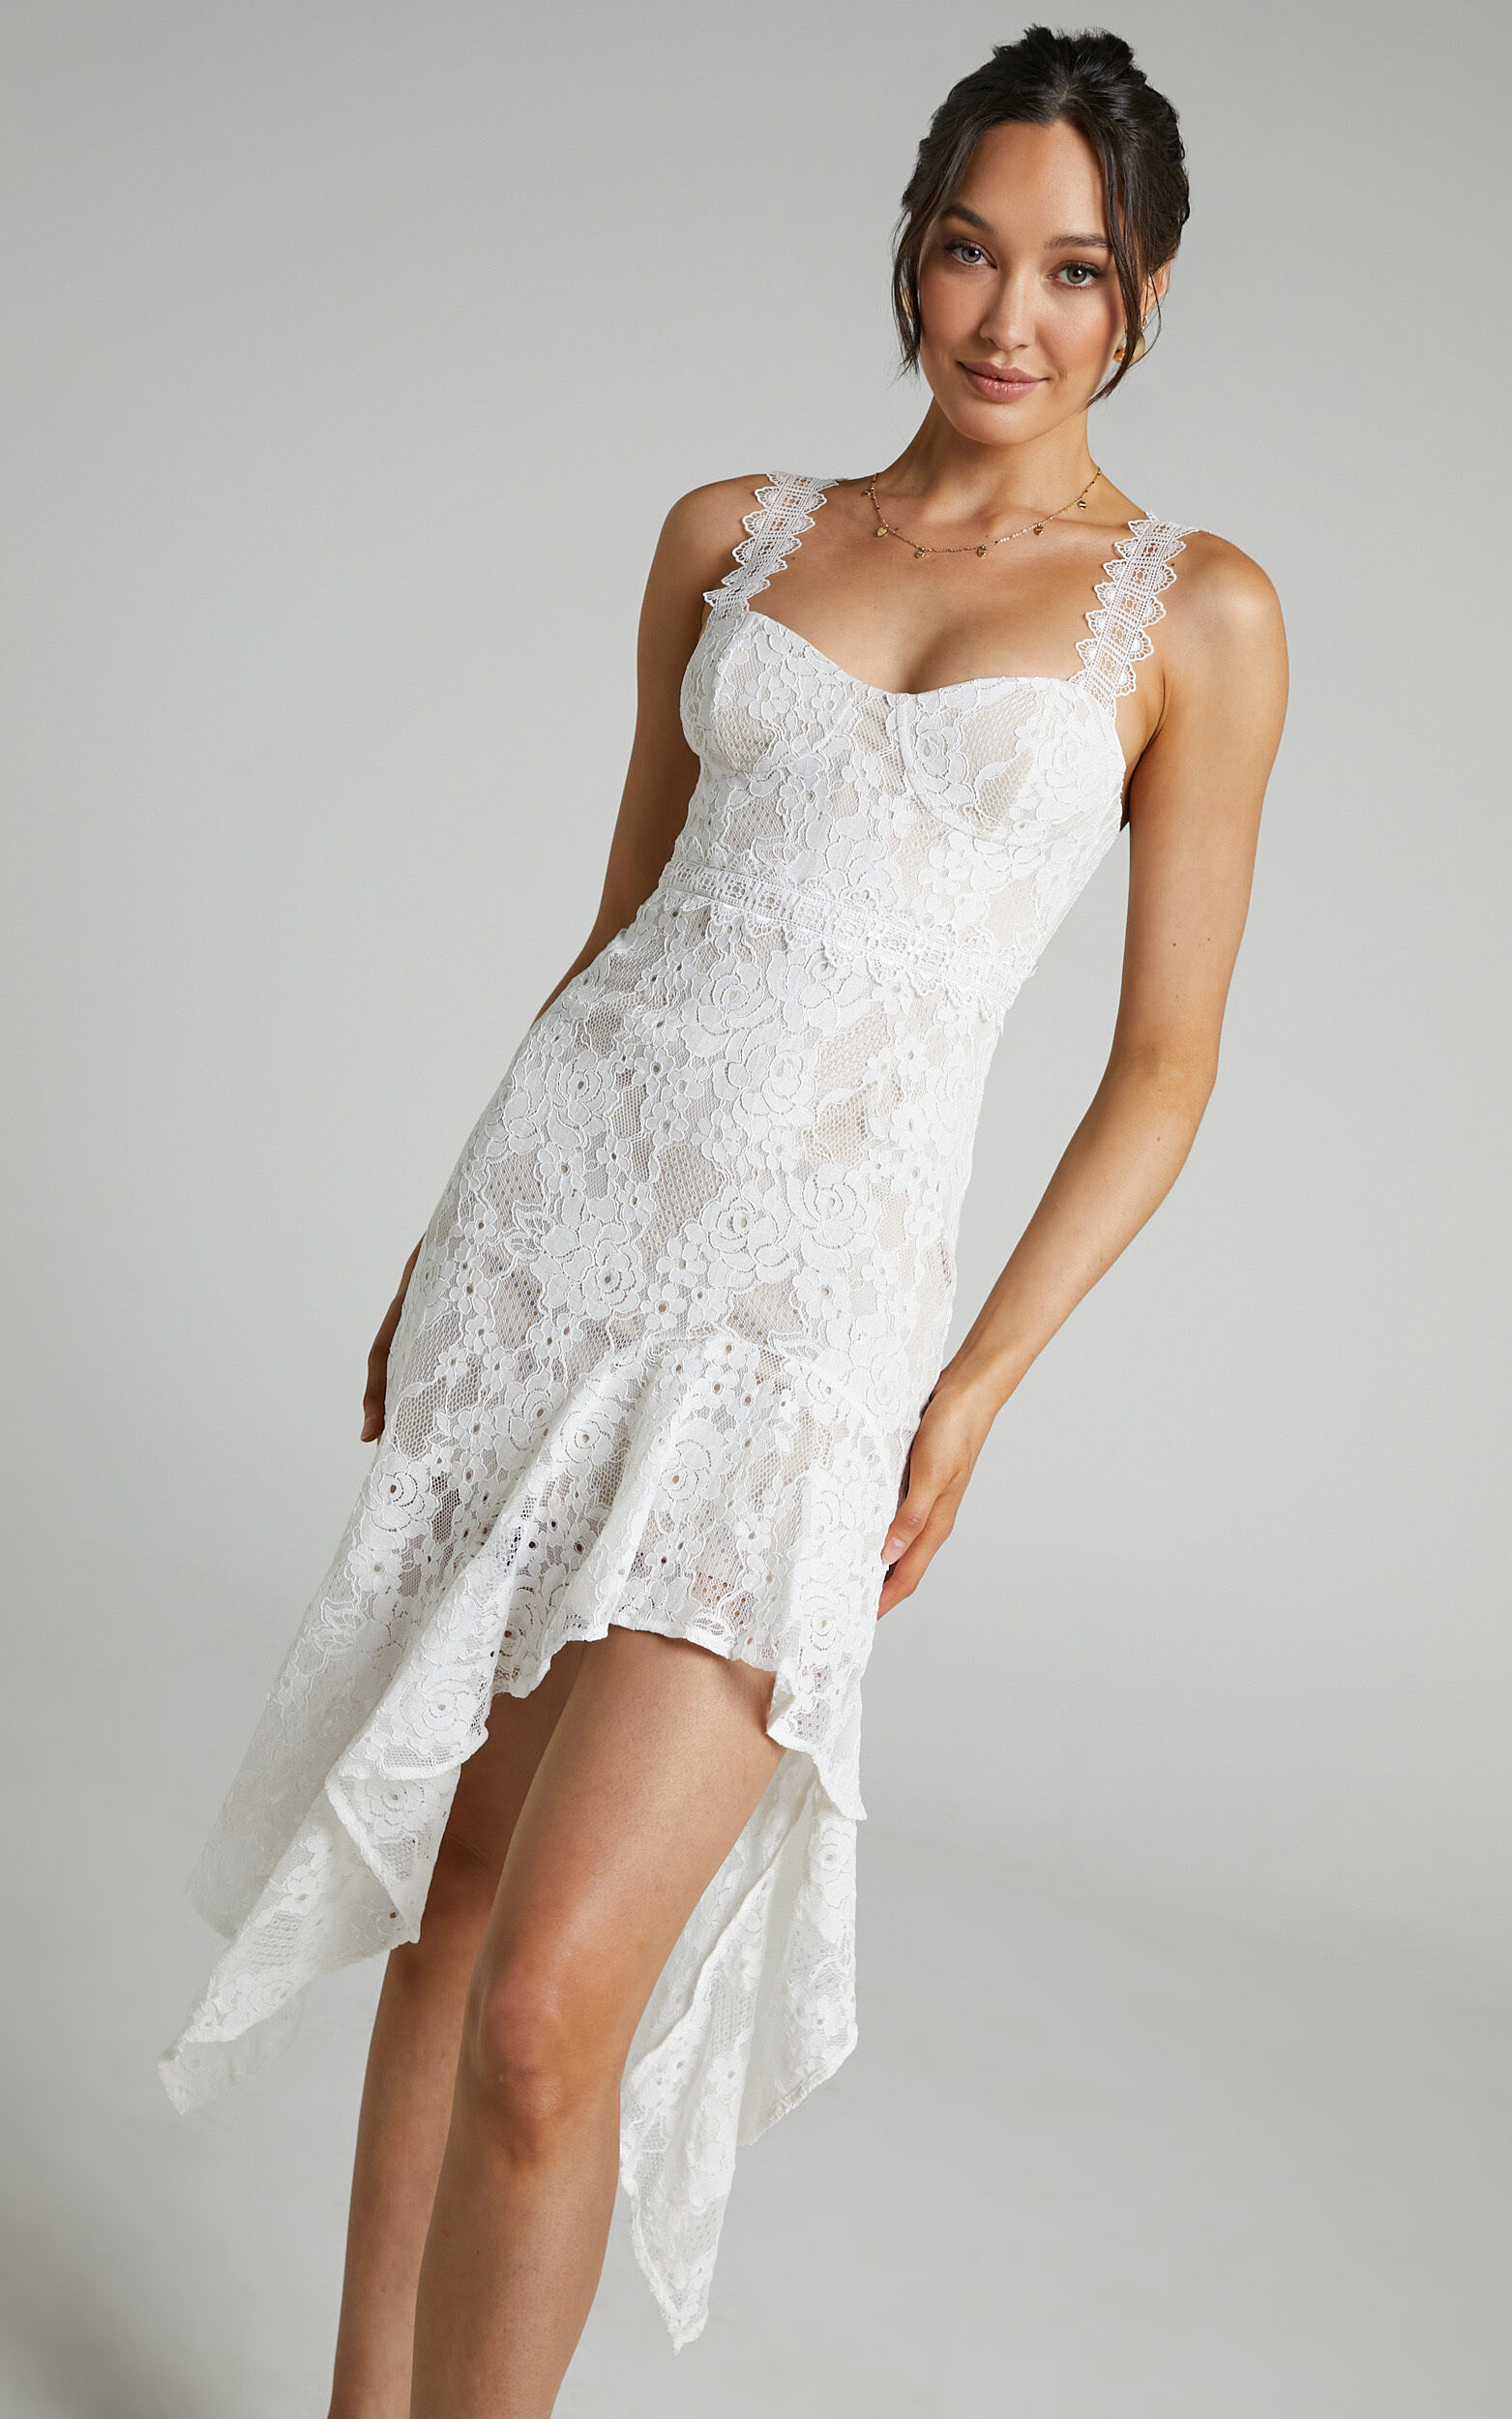 Leurah Sweetheart Aysmmetric Midi Dress in White Lace - 04, WHT1, super-hi-res image number null